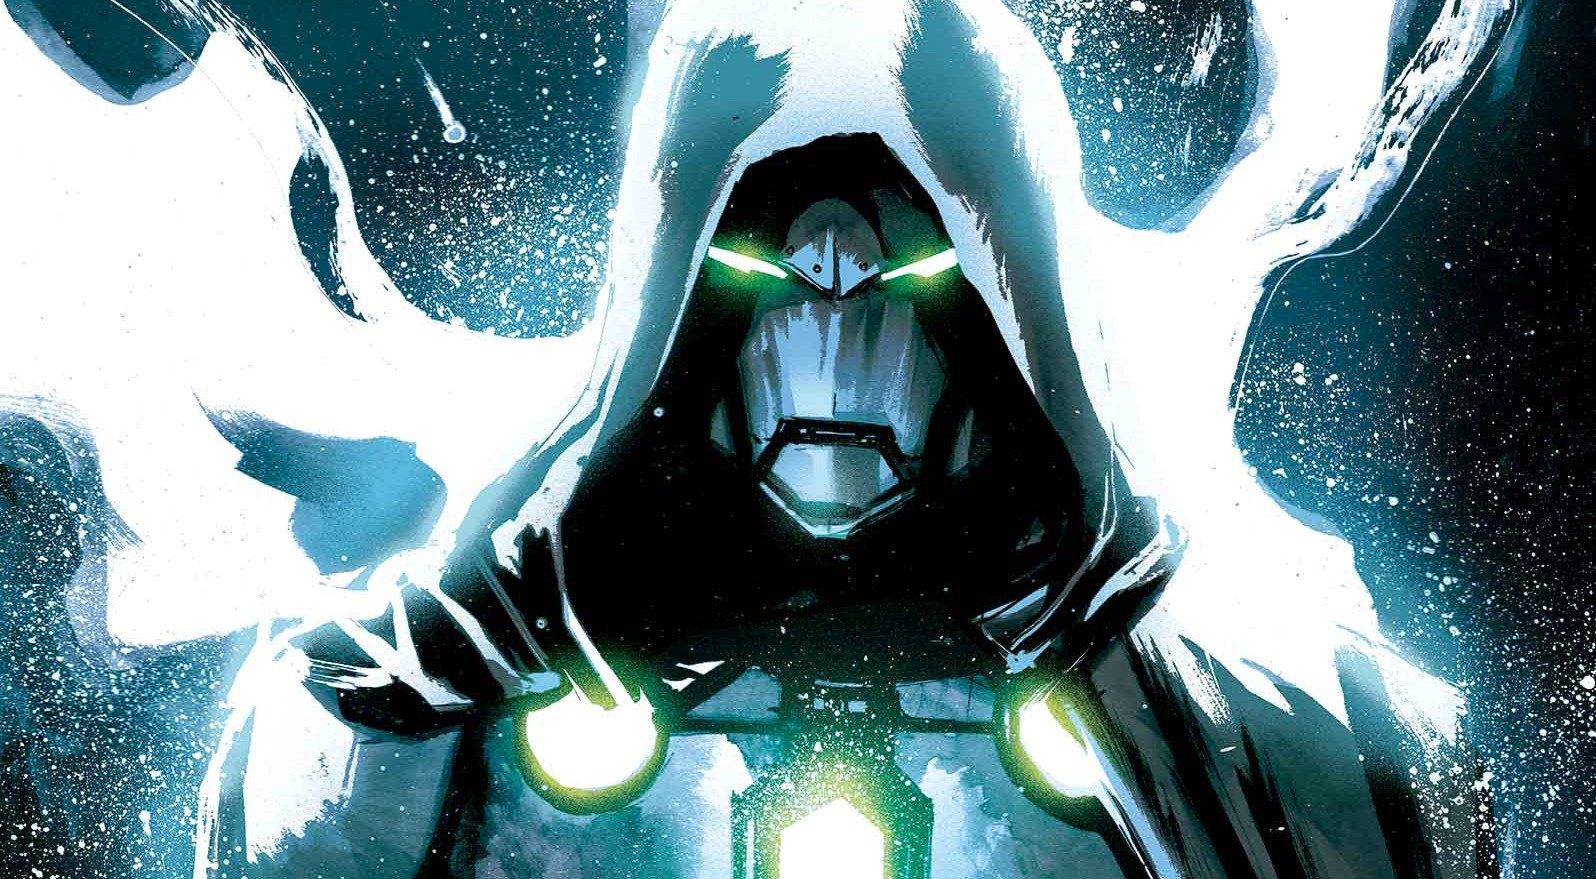 7 Reasons The MCU Needs Dr. Doom More Than The Fantastic Four